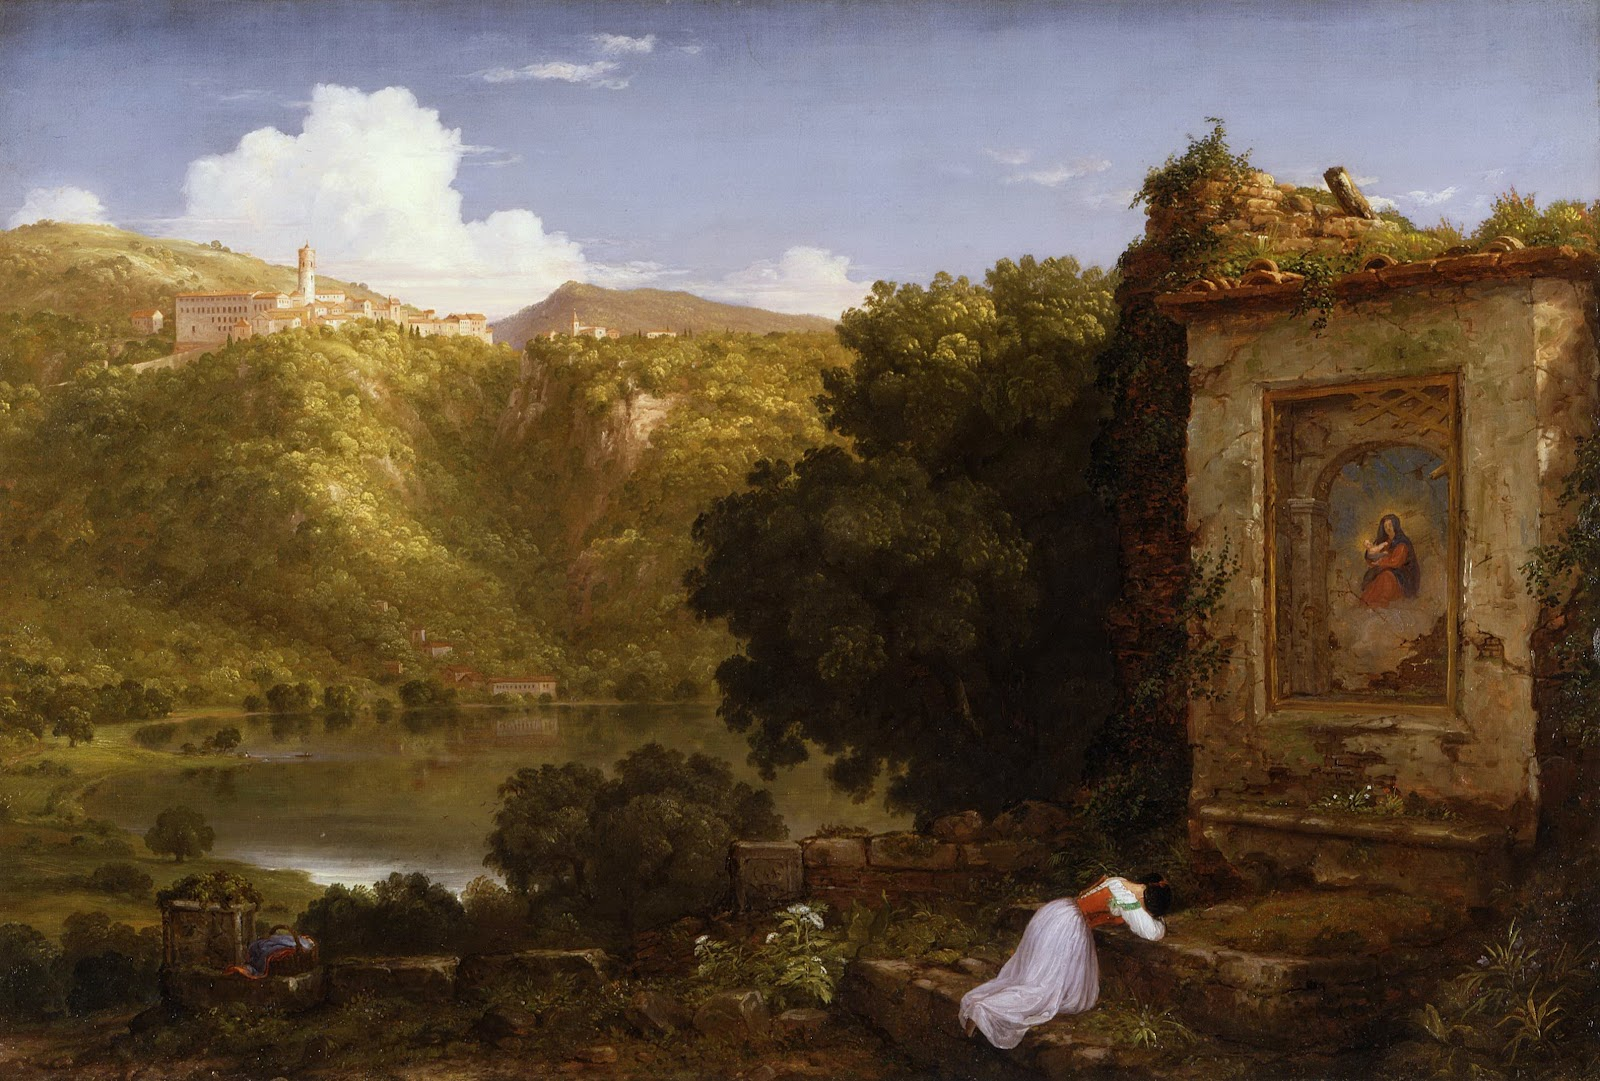 Fall Mountain Scenes Wallpaper 19th Century American Paintings Thomas Cole